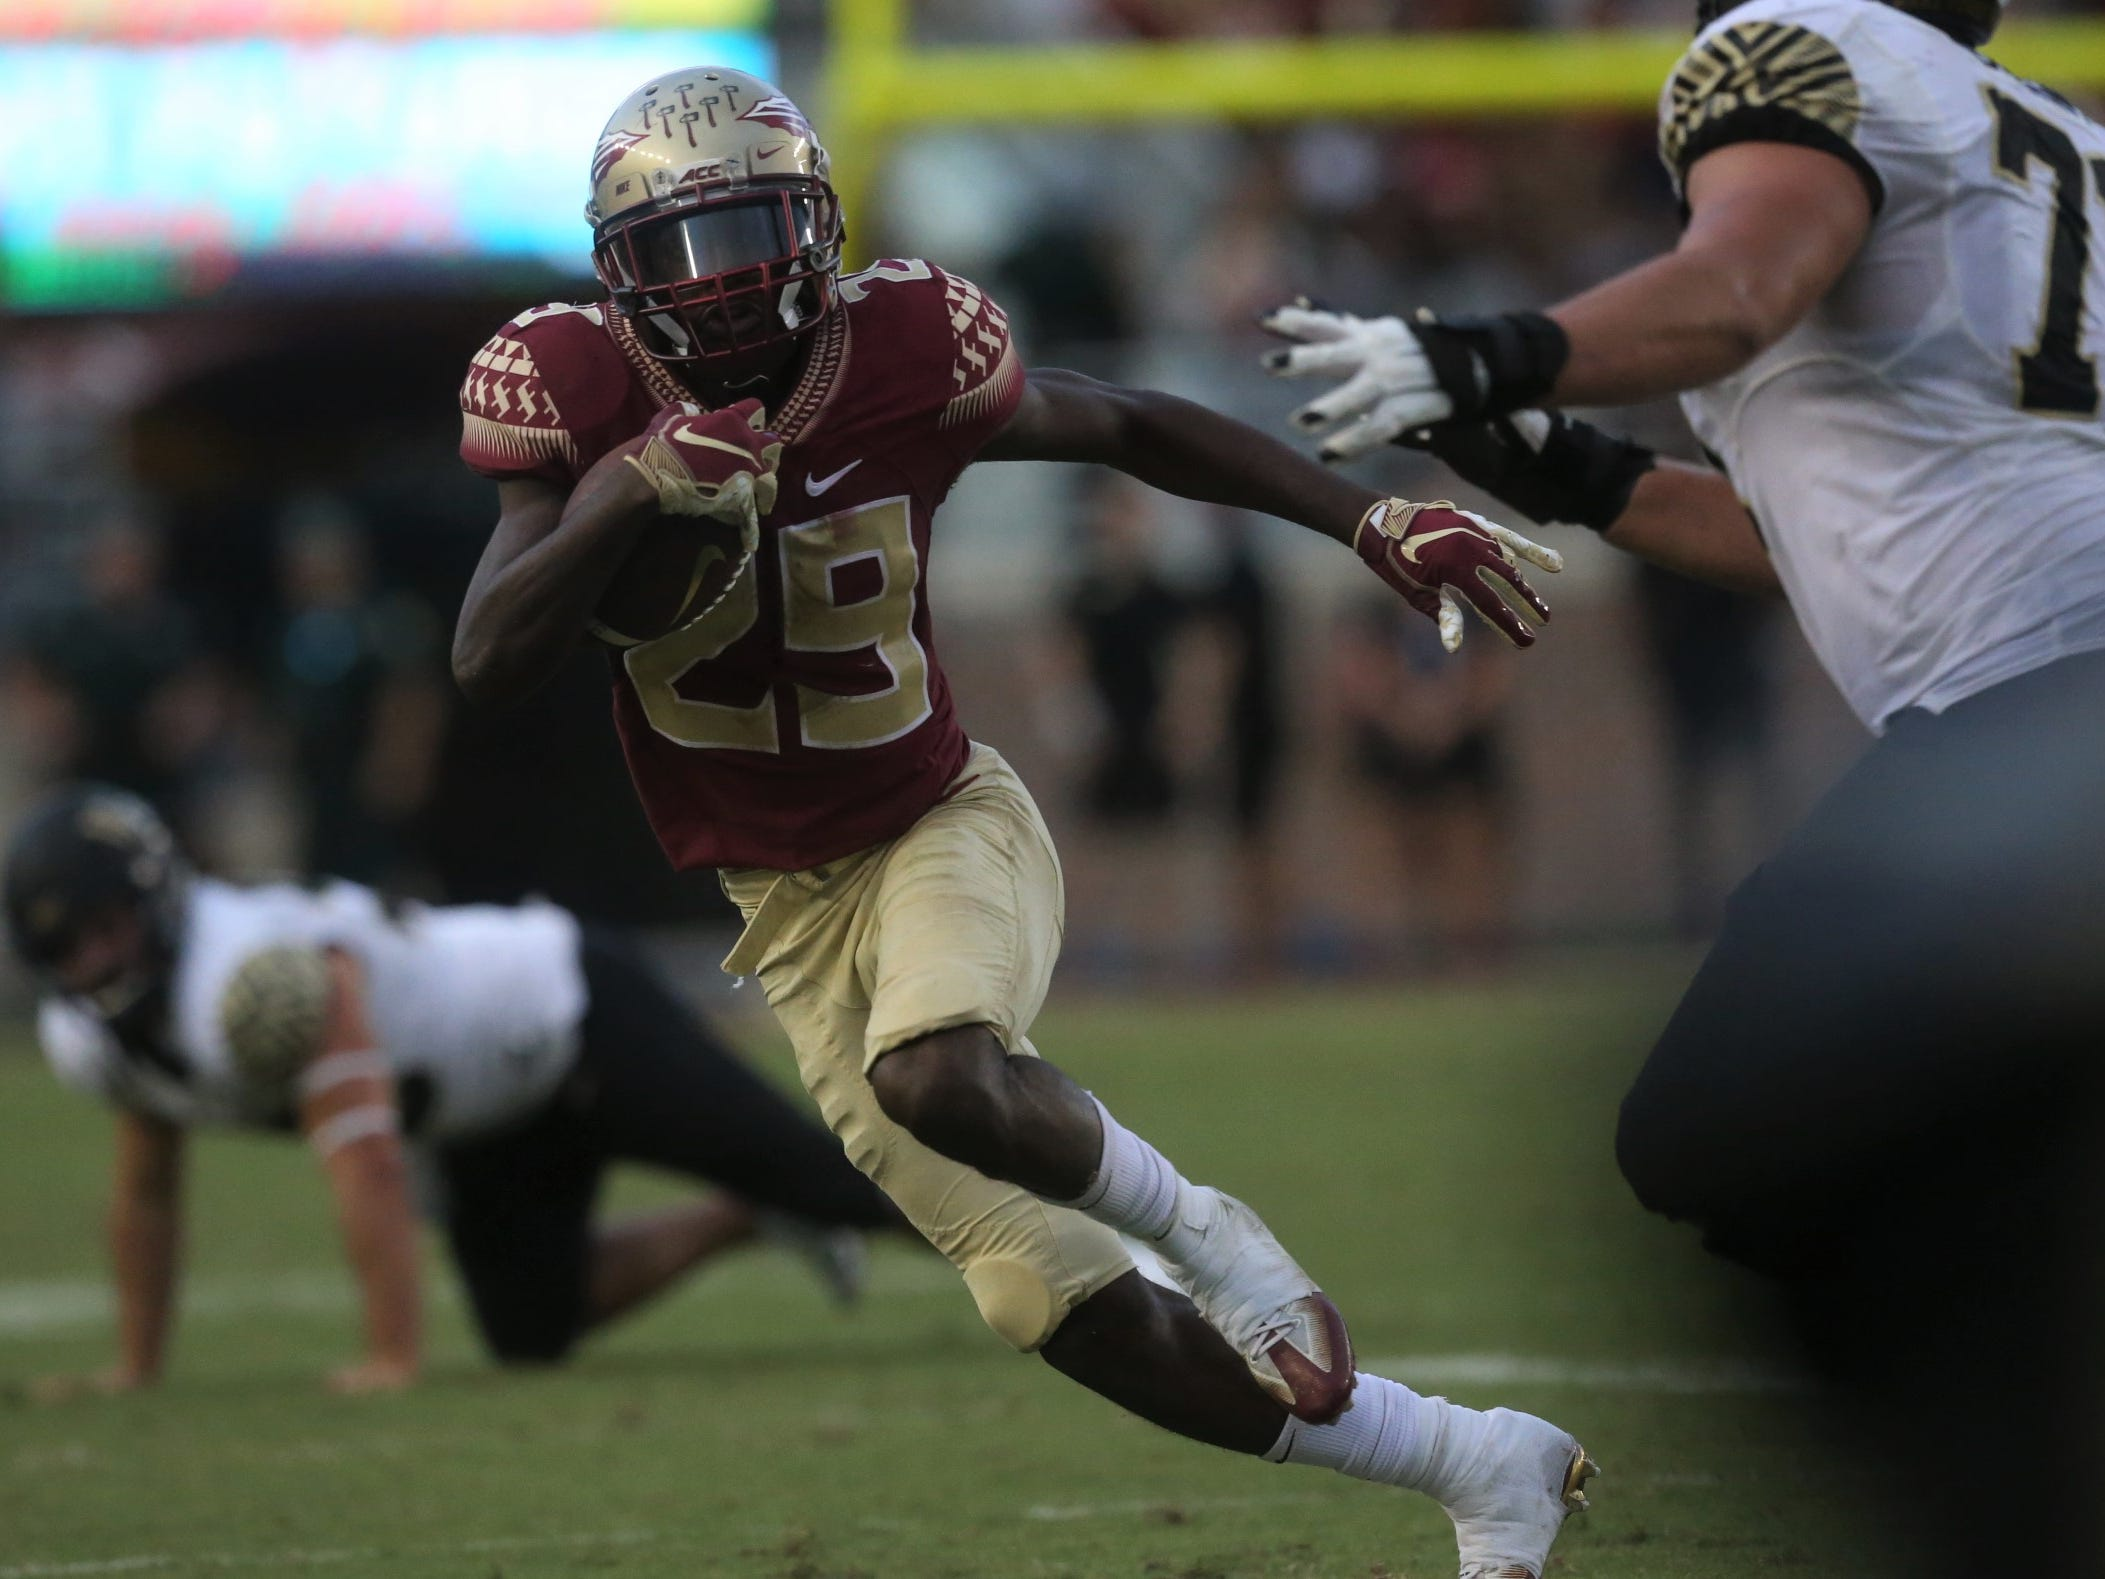 Florida State receiver D.J. Matthews takes off upfield against Wake Forest during a game at Doak Campbell Stadium on Saturday, Oct. 20, 2018.